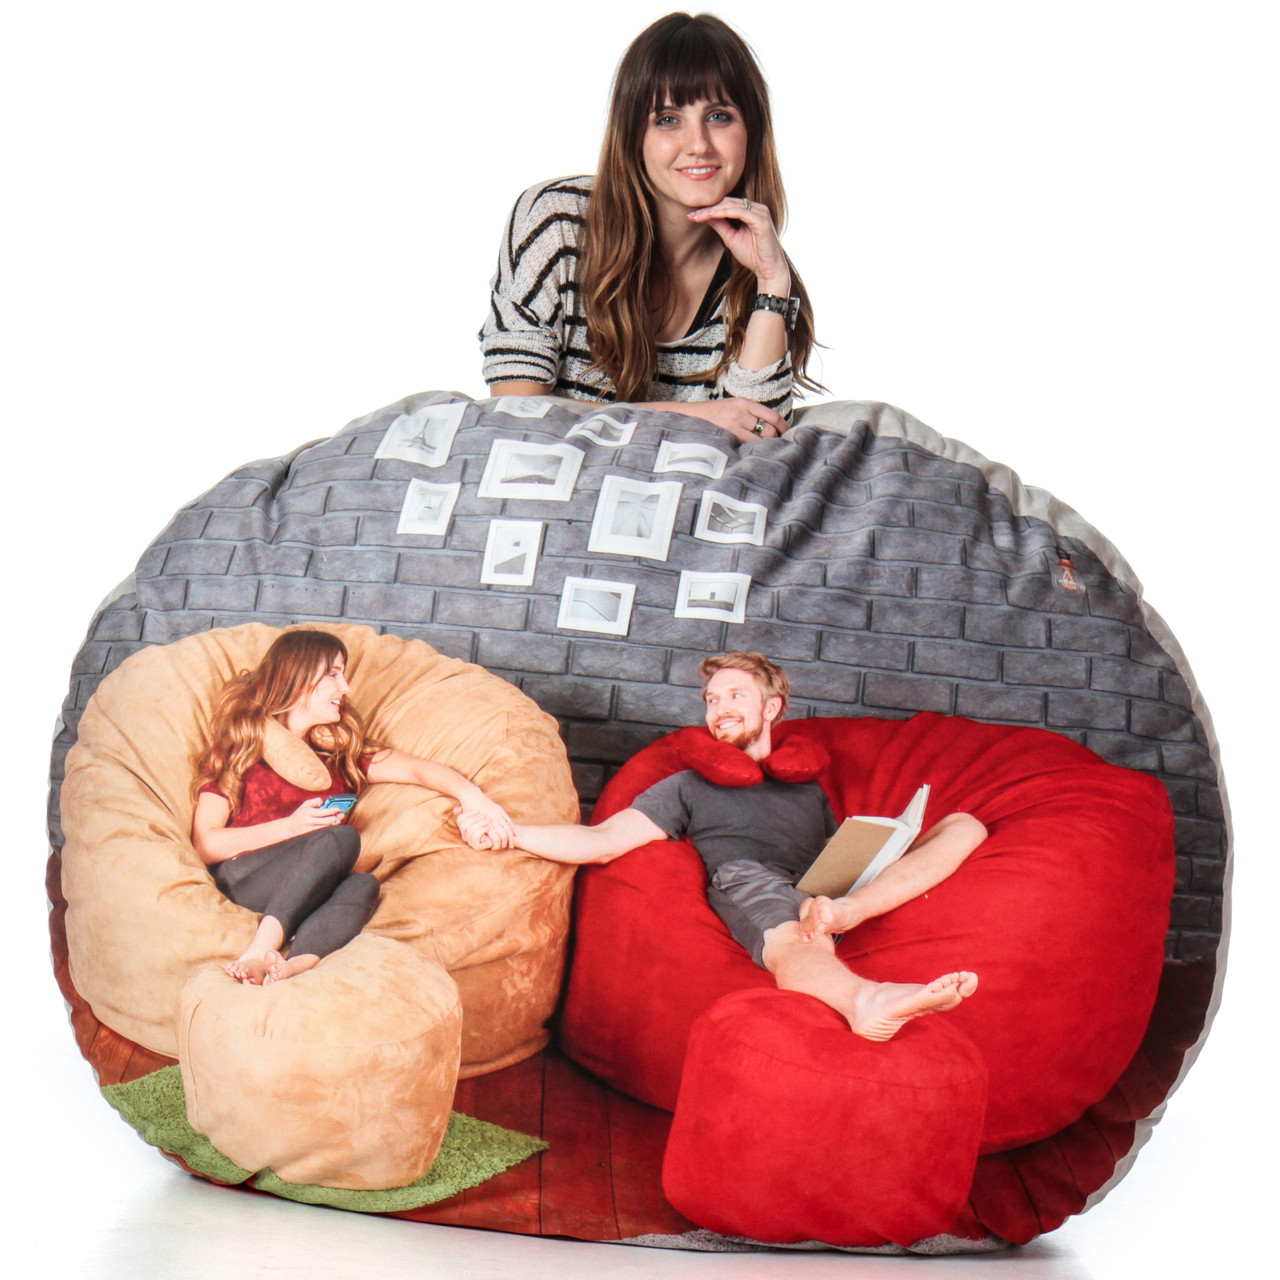 Super Soft Personalized Bean Bag with Custom Photo Upload